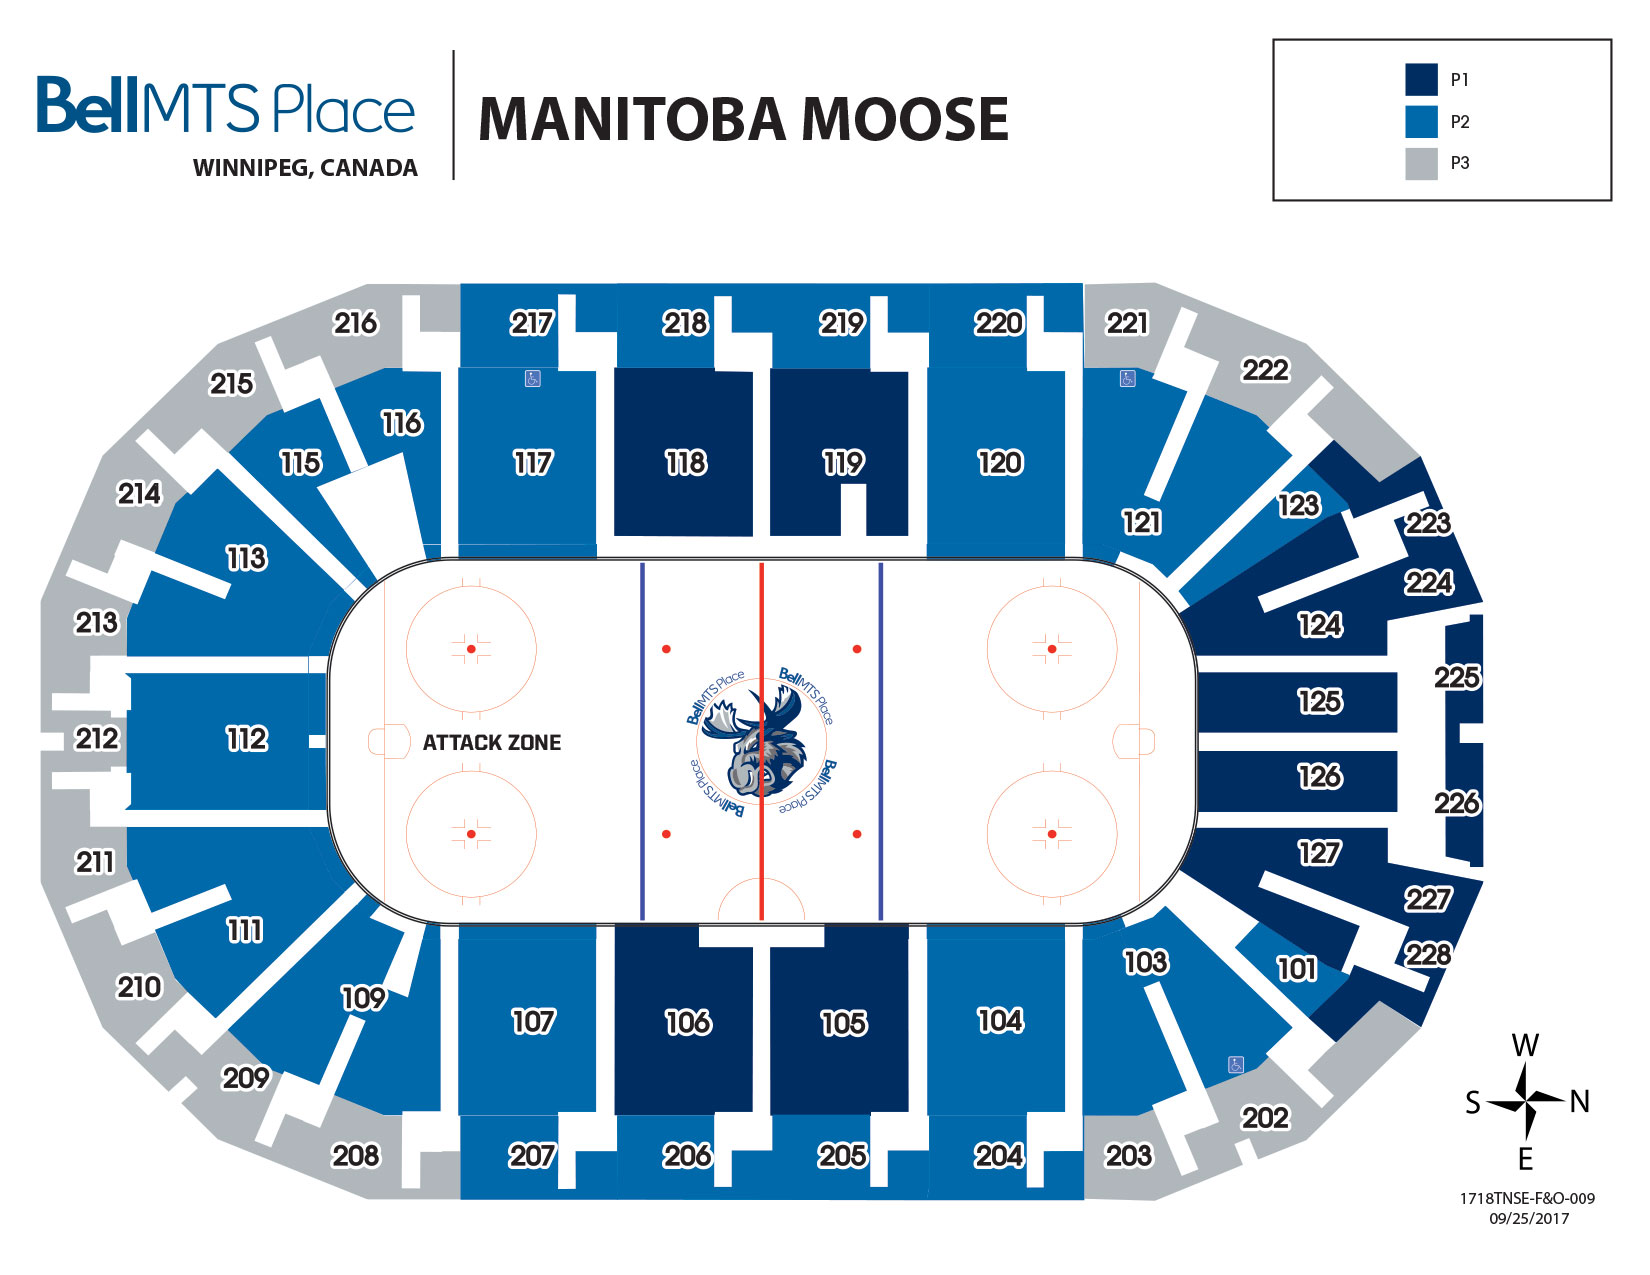 Bell MTS Place - Manitoba Moose